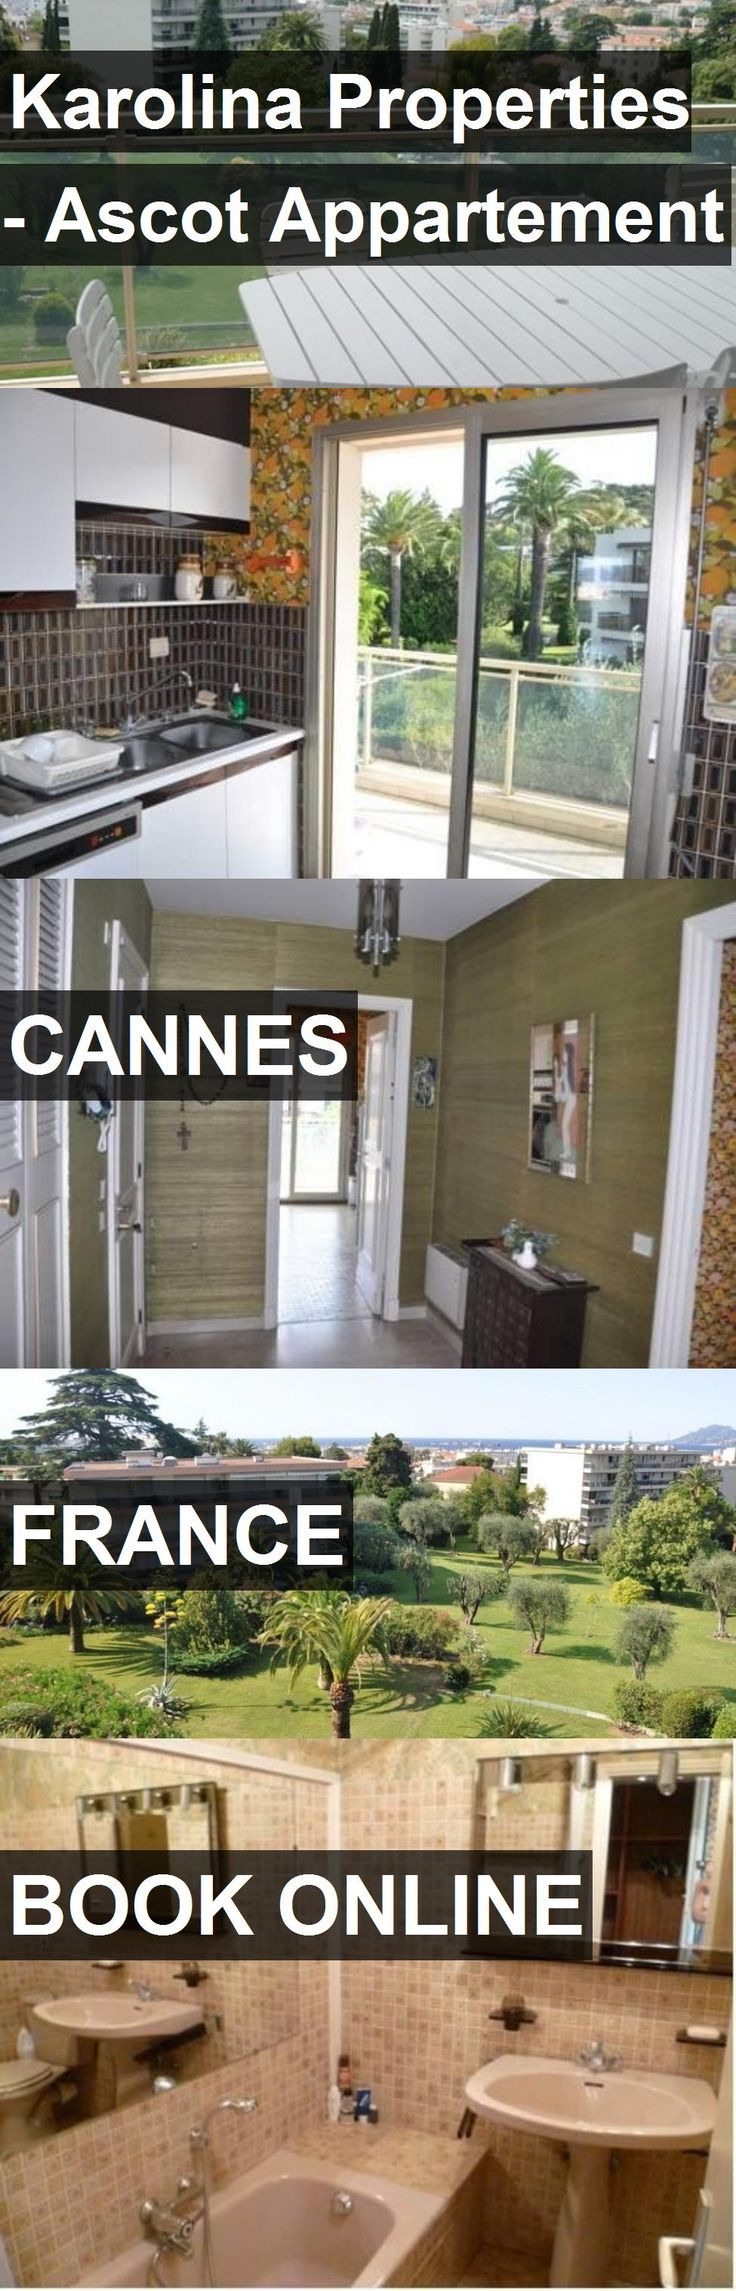 Hotel Karolina Properties - Ascot Appartement in Cannes, France. For more information, photos, reviews and best prices please follow the link. #France #Cannes #travel #vacation #hotel